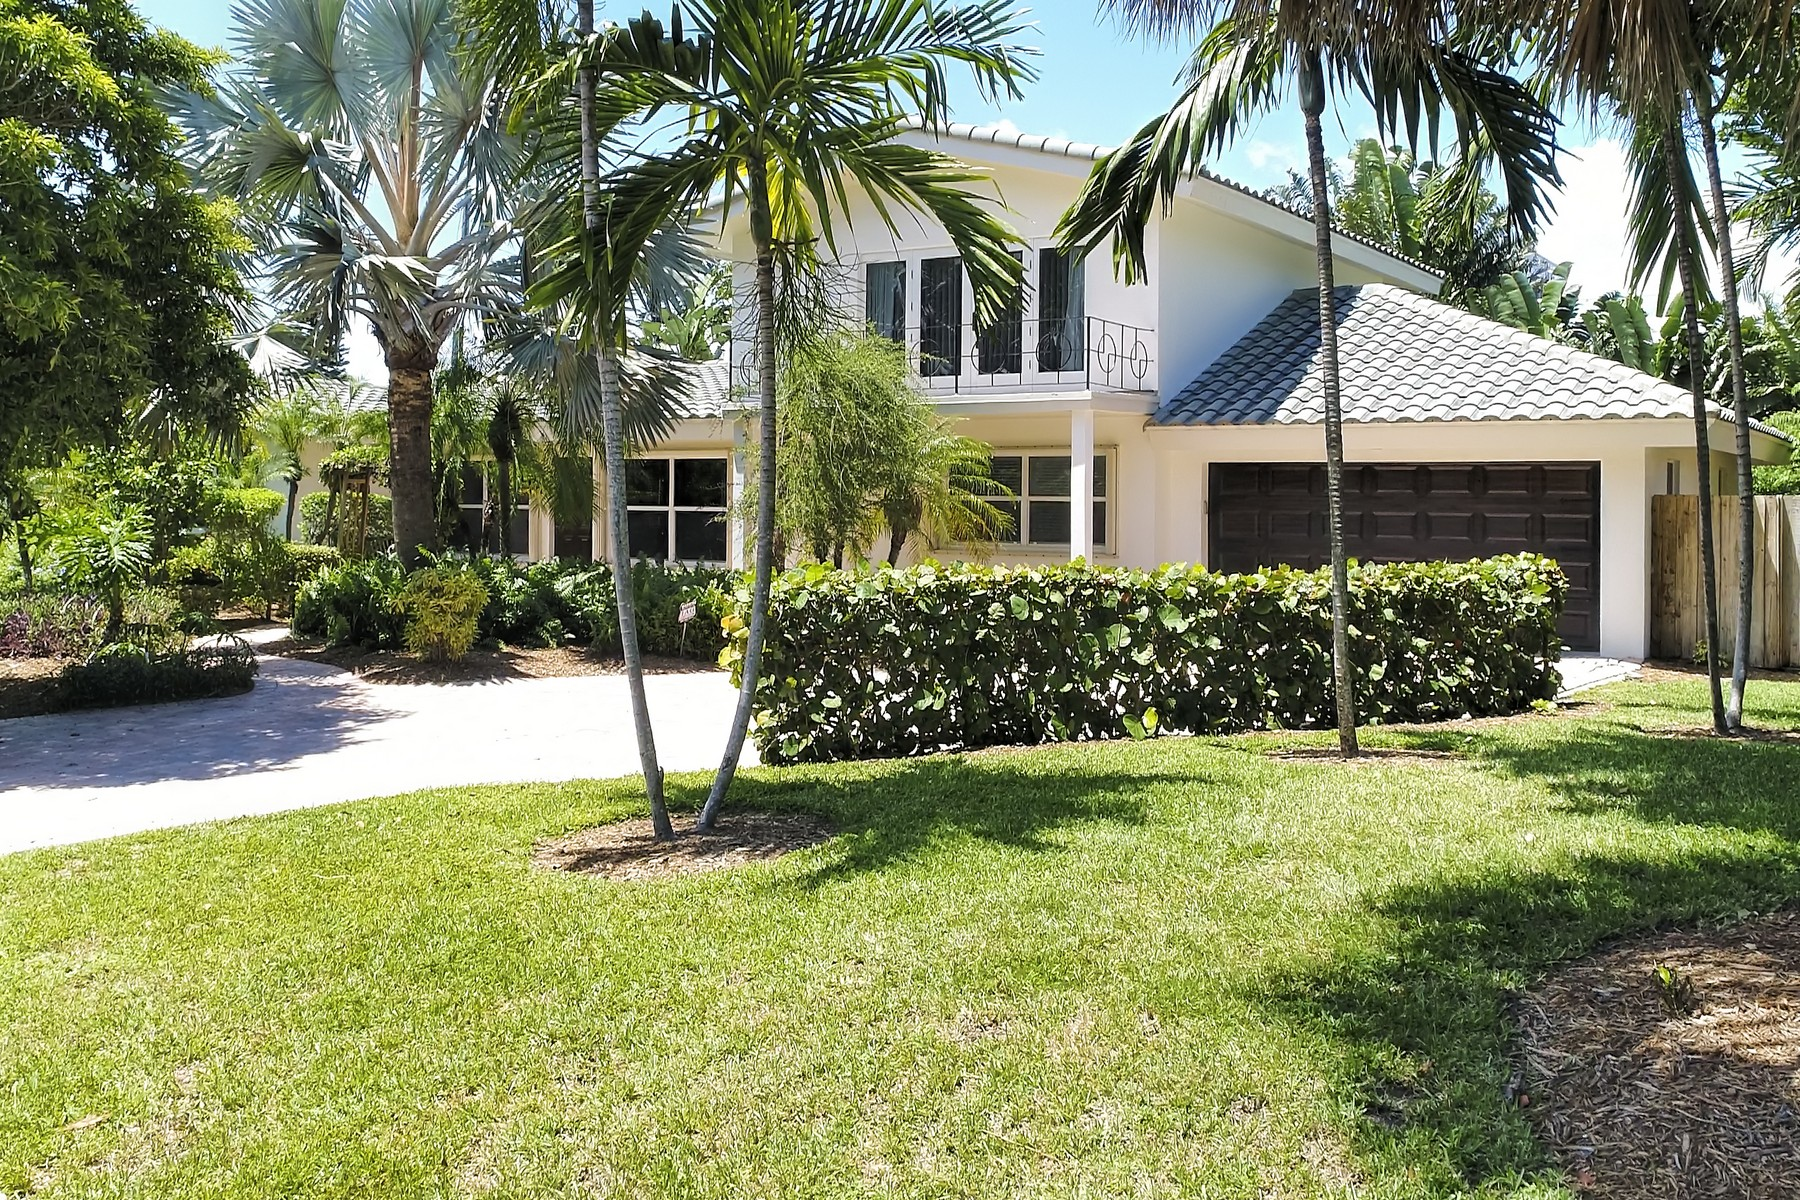 Single Family Home for Sale at 2003 Bay Dr, Pompano Beach, FL 33062 2003 Bay Dr, Pompano Beach, Florida, 33062 United States